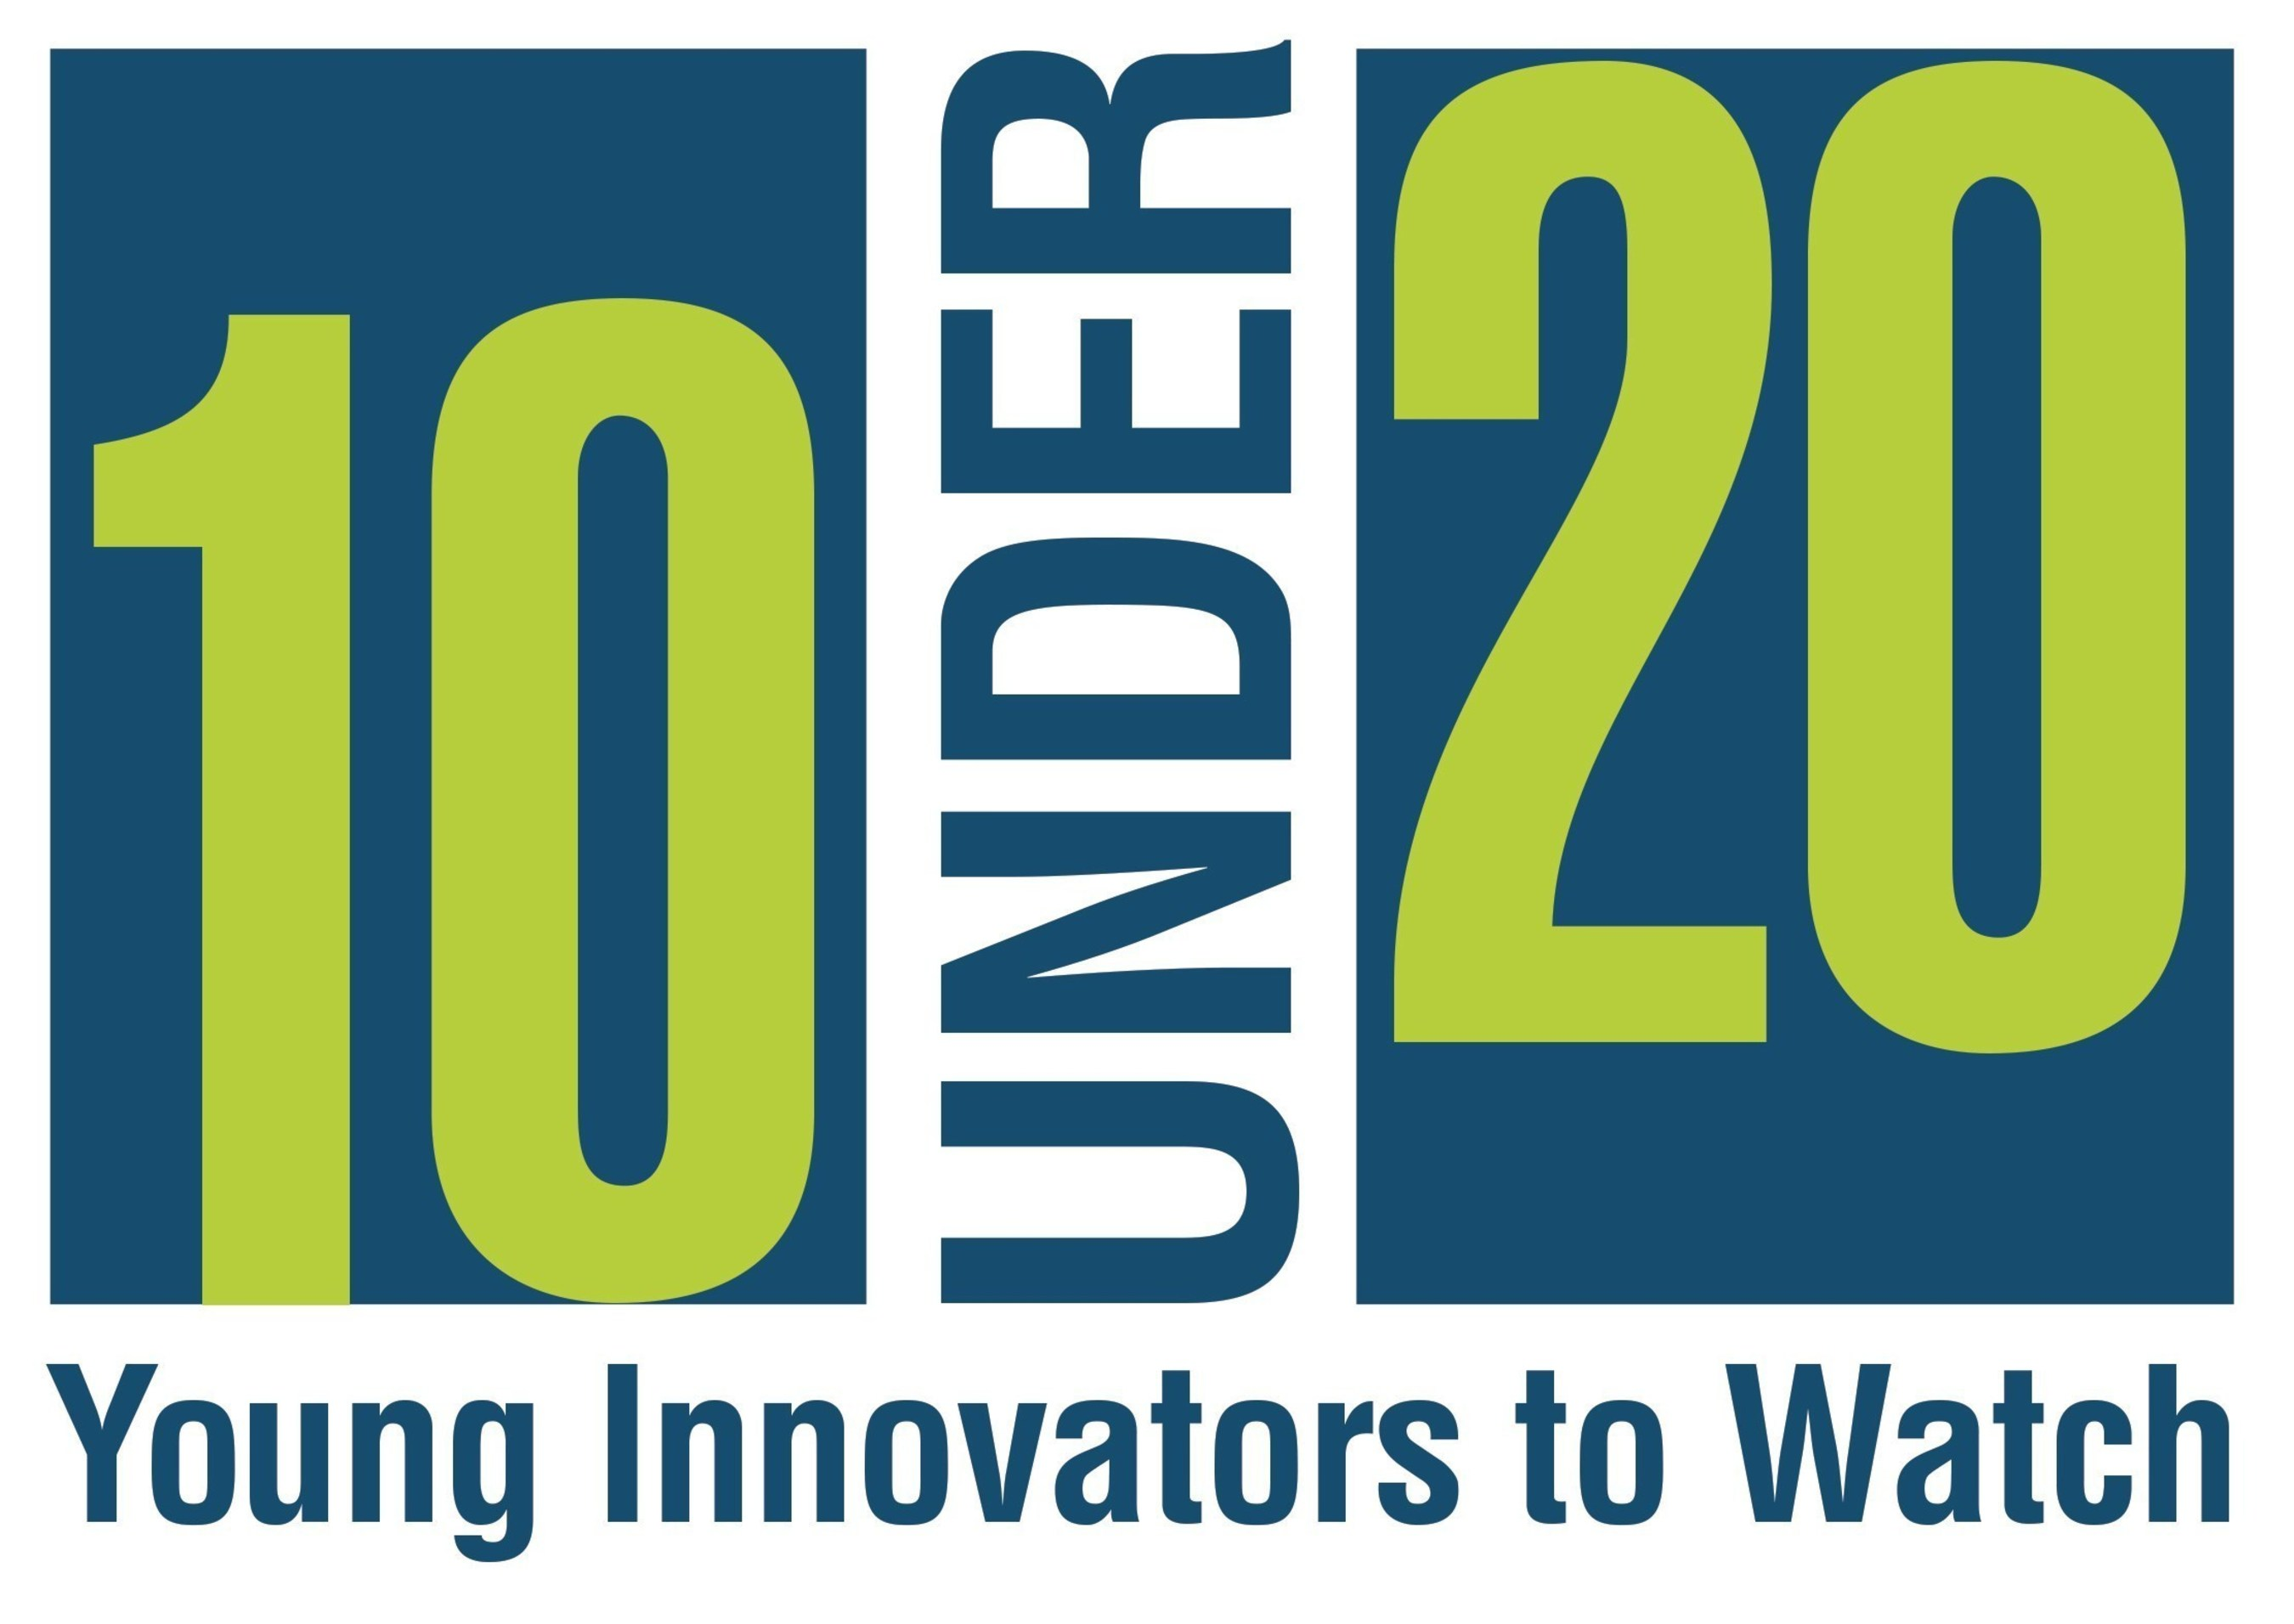 10 Under 20: Young Innovators to Watch